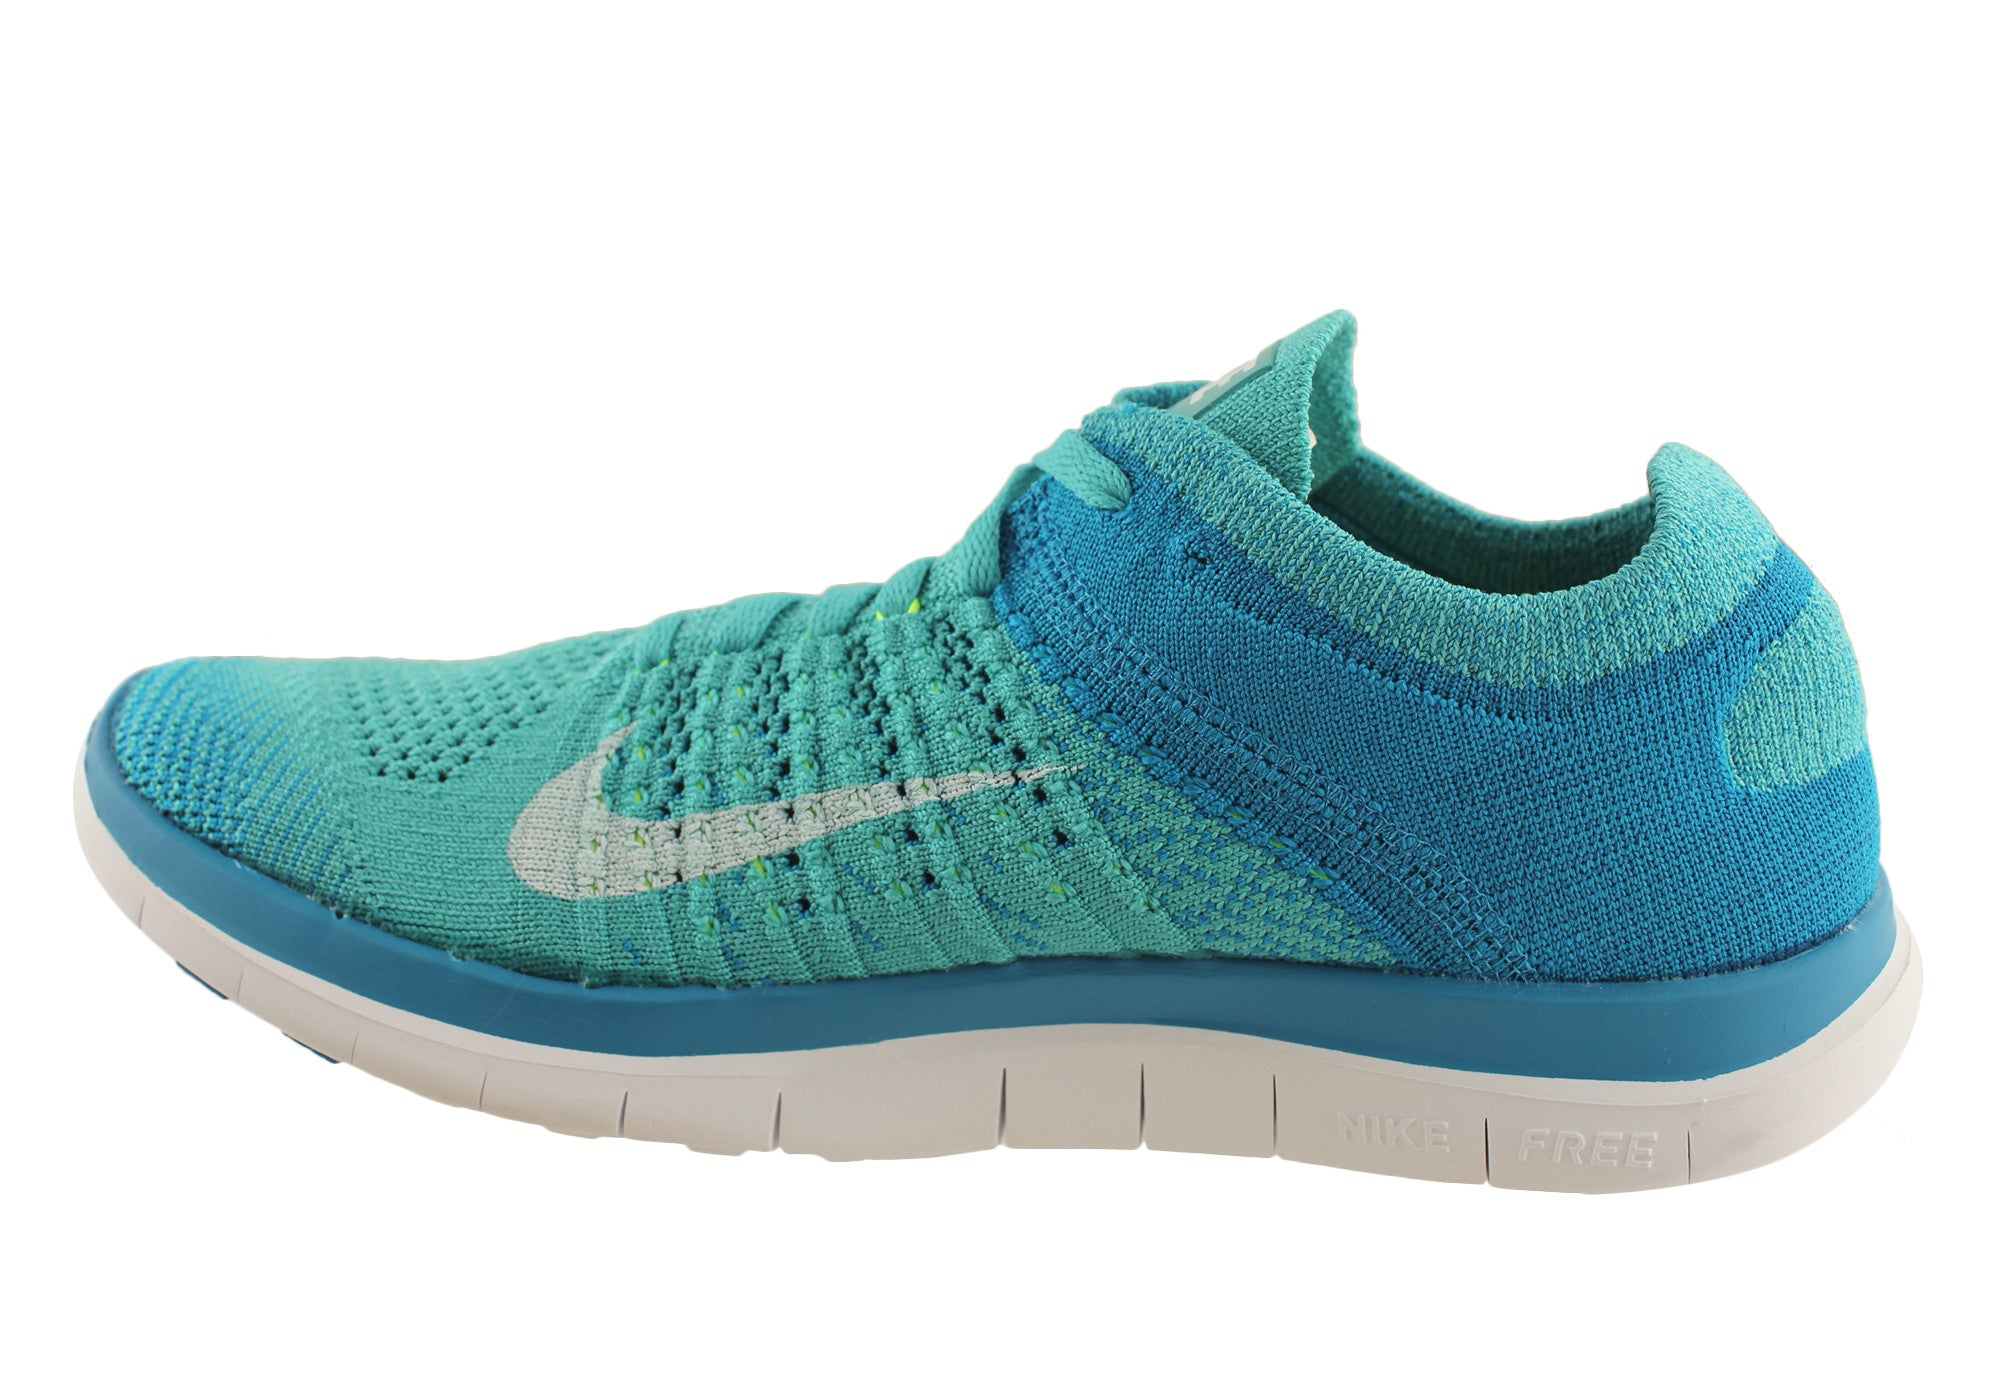 quality design 773fe 8fd5c Nike Free Flyknit 4.0 Womens Lightweight Running Shoes ...